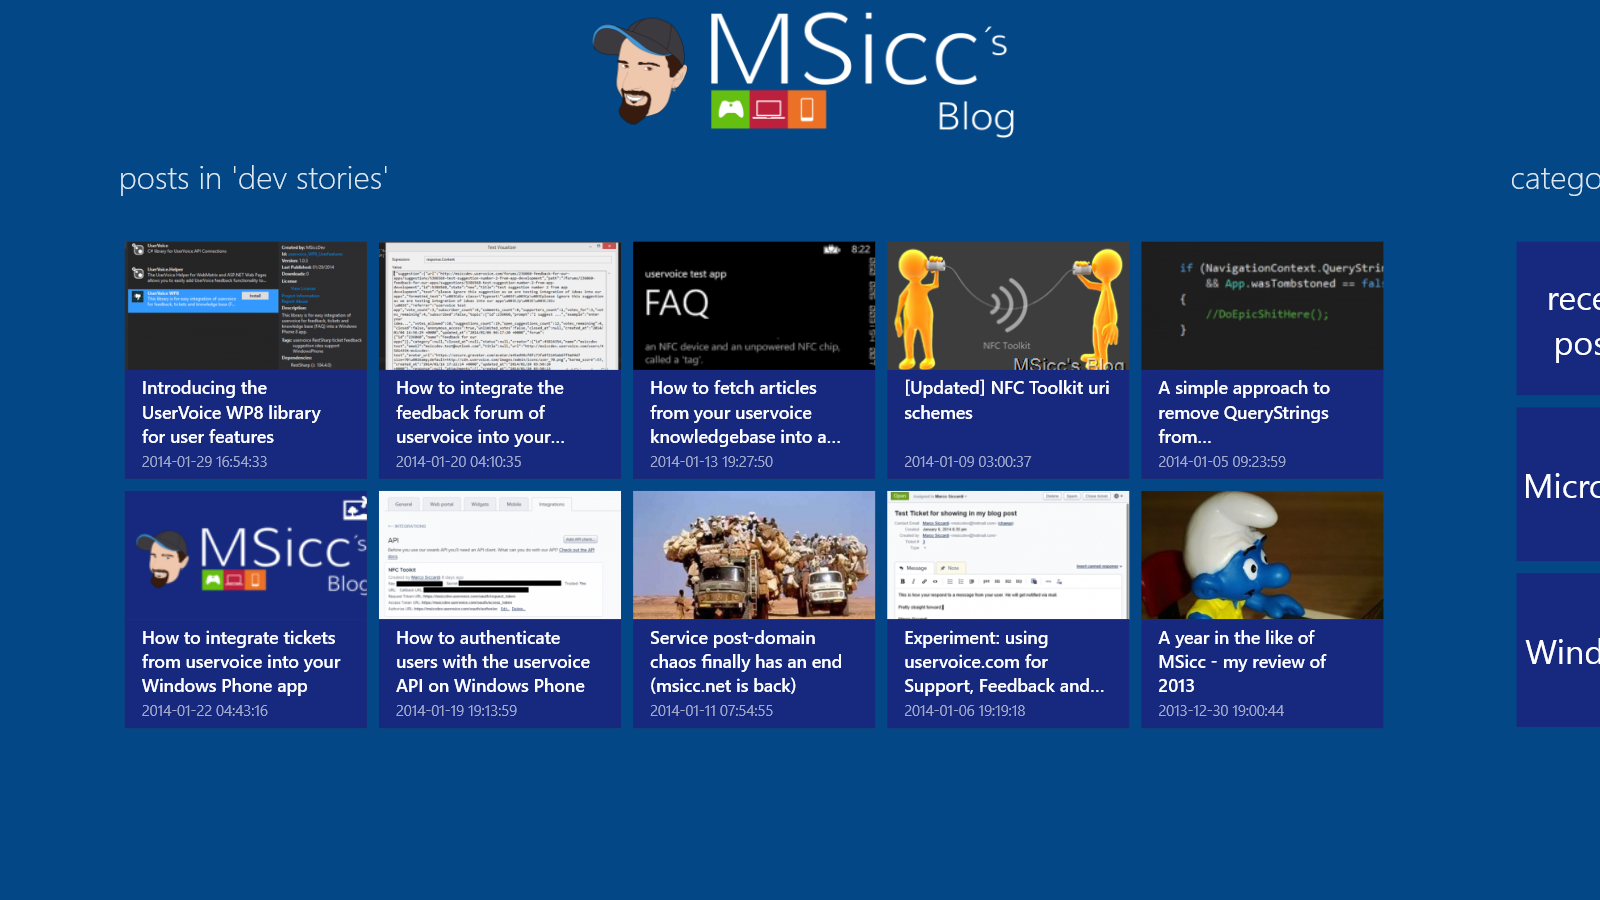 MSicc's Blog for Windows 8